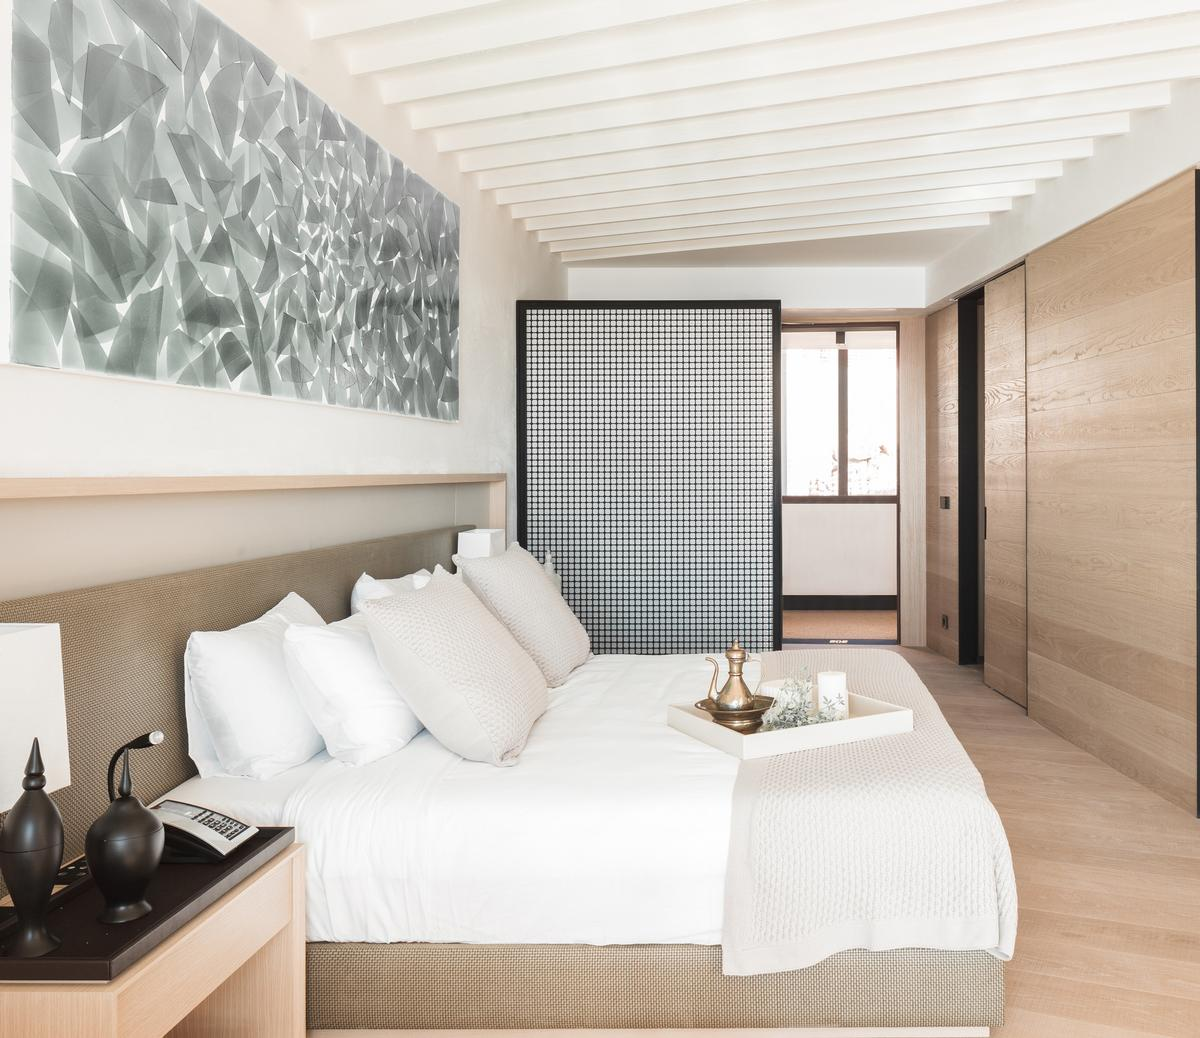 Designed by Barcelona-based OAB architects, the 141-bedroom Canyon Ranch Kaplankaya is constructed with environmentally-conscious materials and finished to complement the surrounding scenery